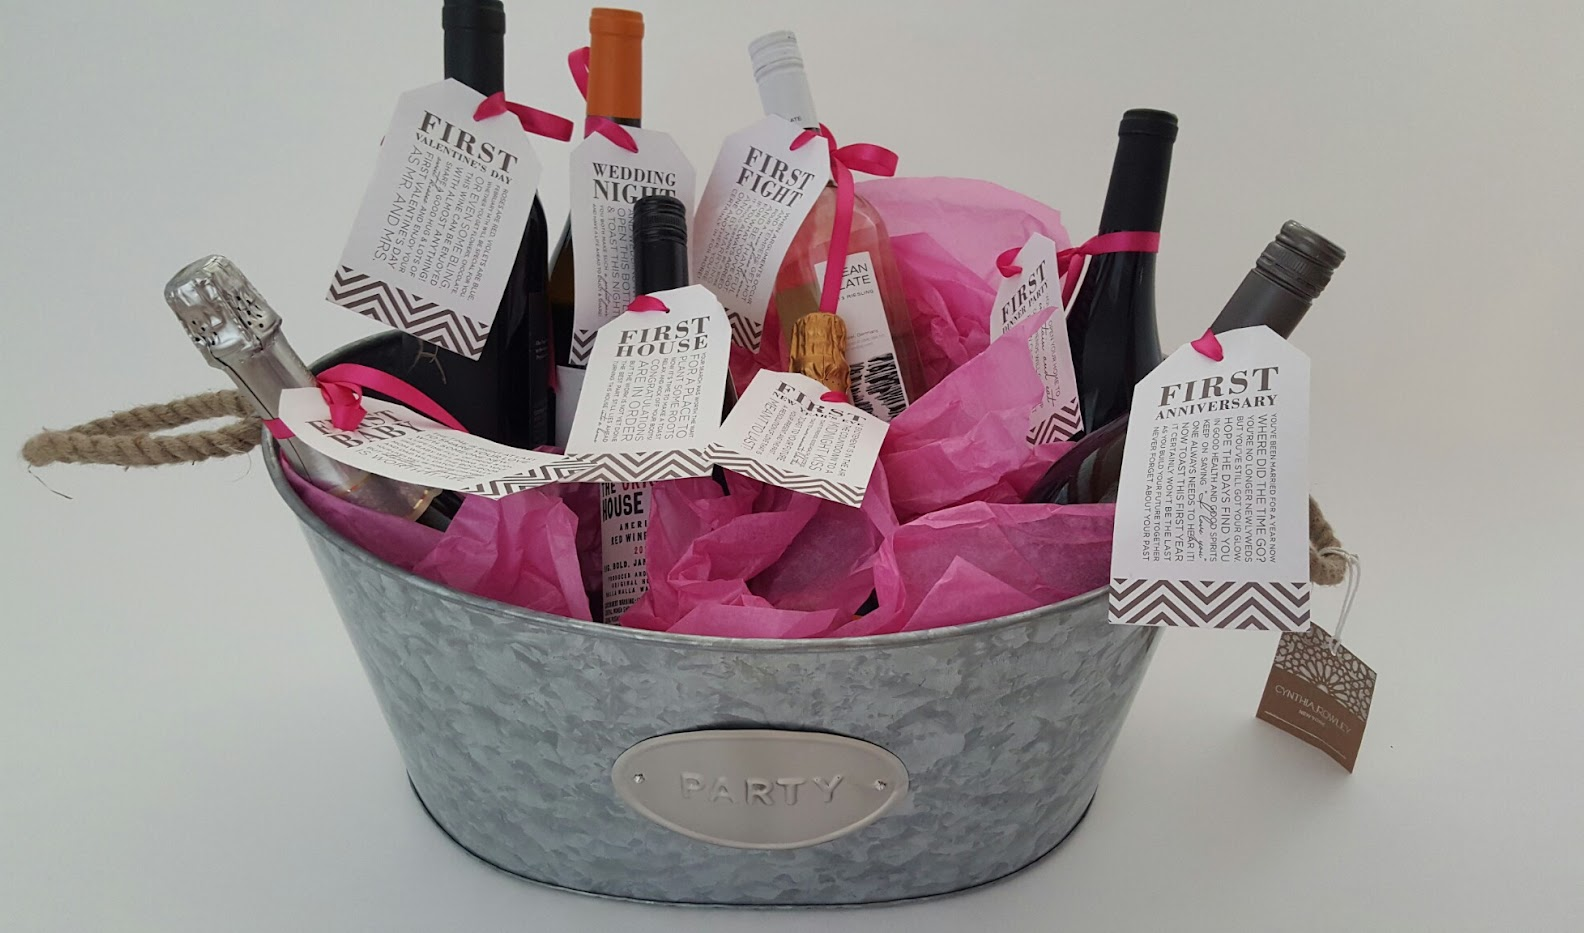 Wedding Shower Gift Ideas For The Groom : Bridal Shower Gift DIY to Try: A Basket of ?Firsts? for the Bride ...